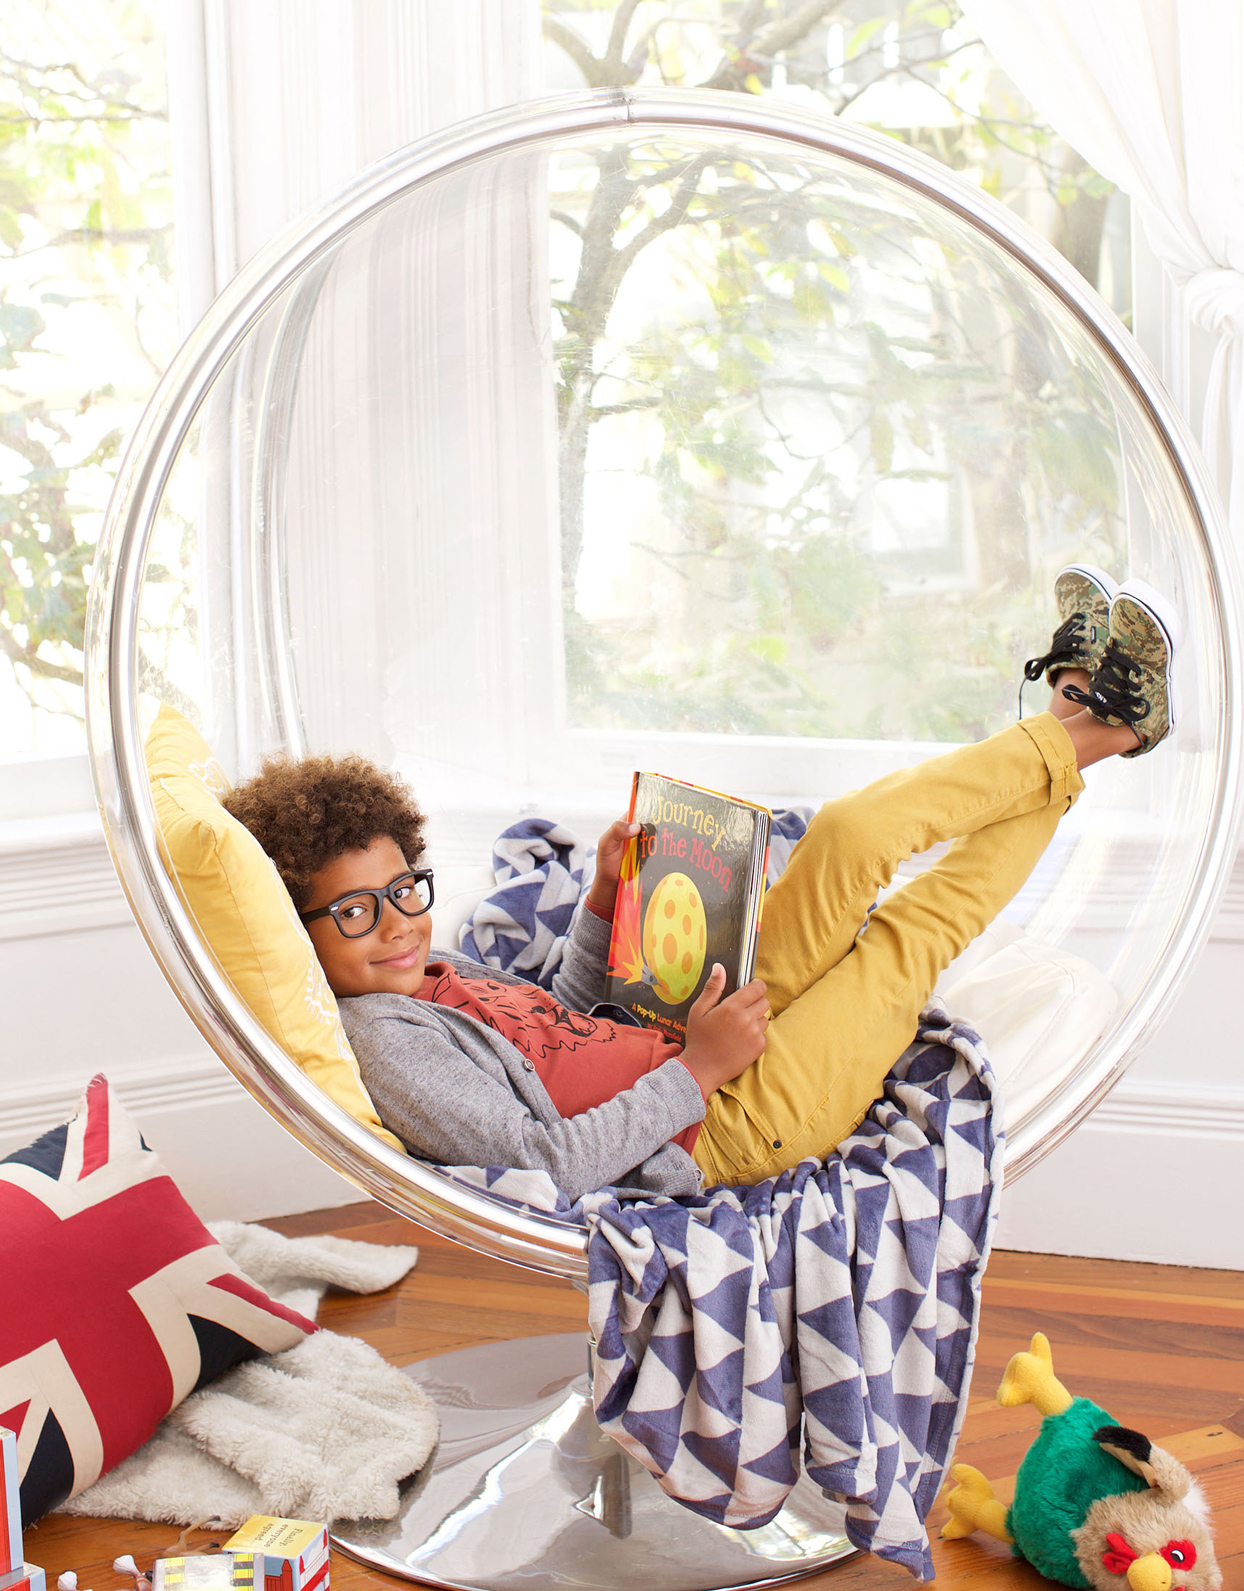 boy reading book in clear bubble chair